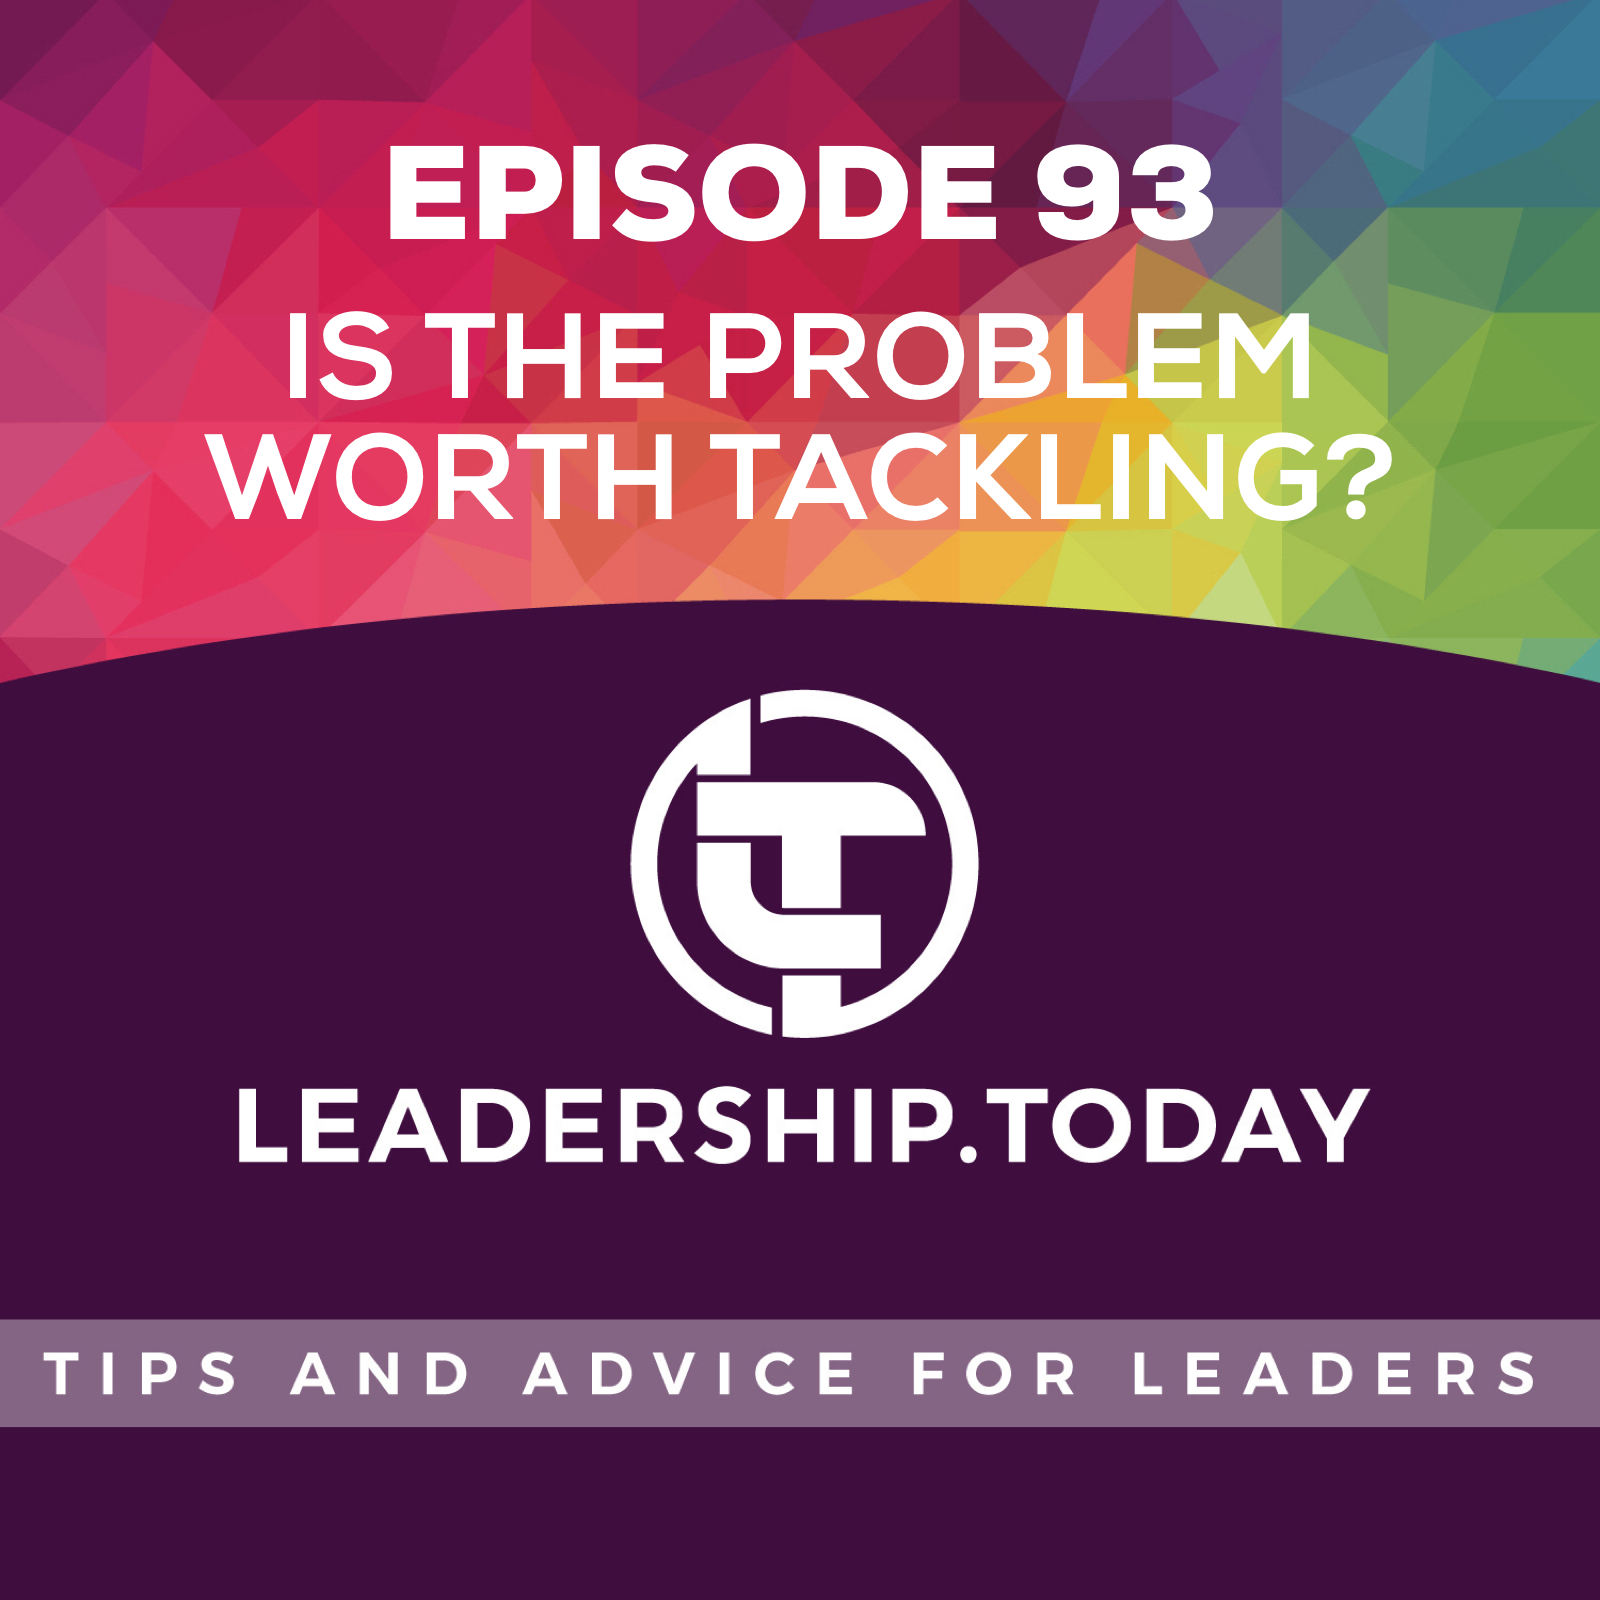 Episode 93 - Is the Problem Worth Tackling?